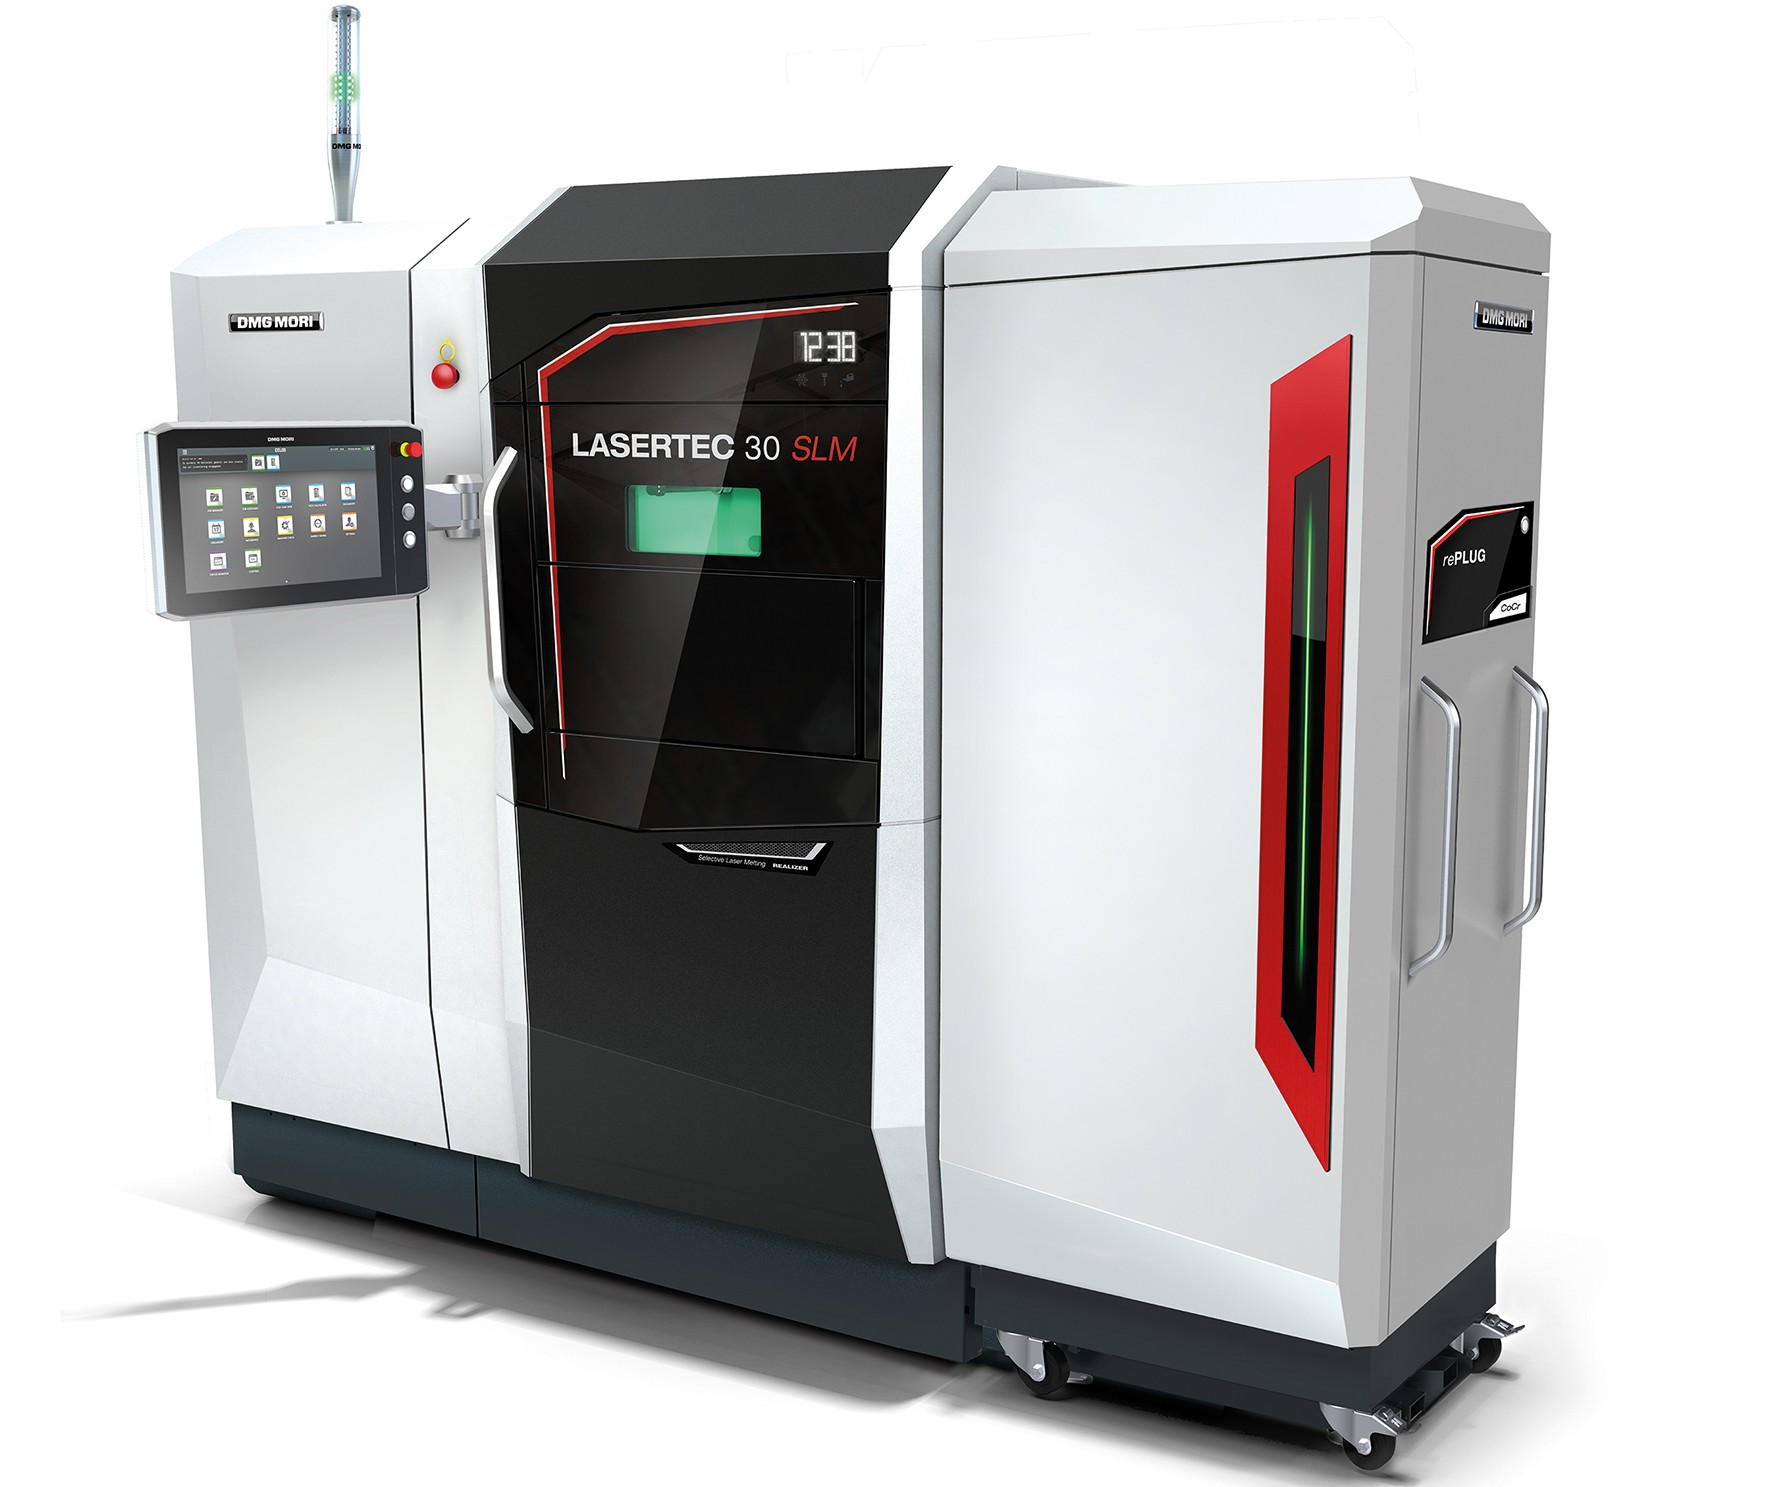 DMG MORI will display its Lasertec 30 selective laser melter at IMTS 2018.